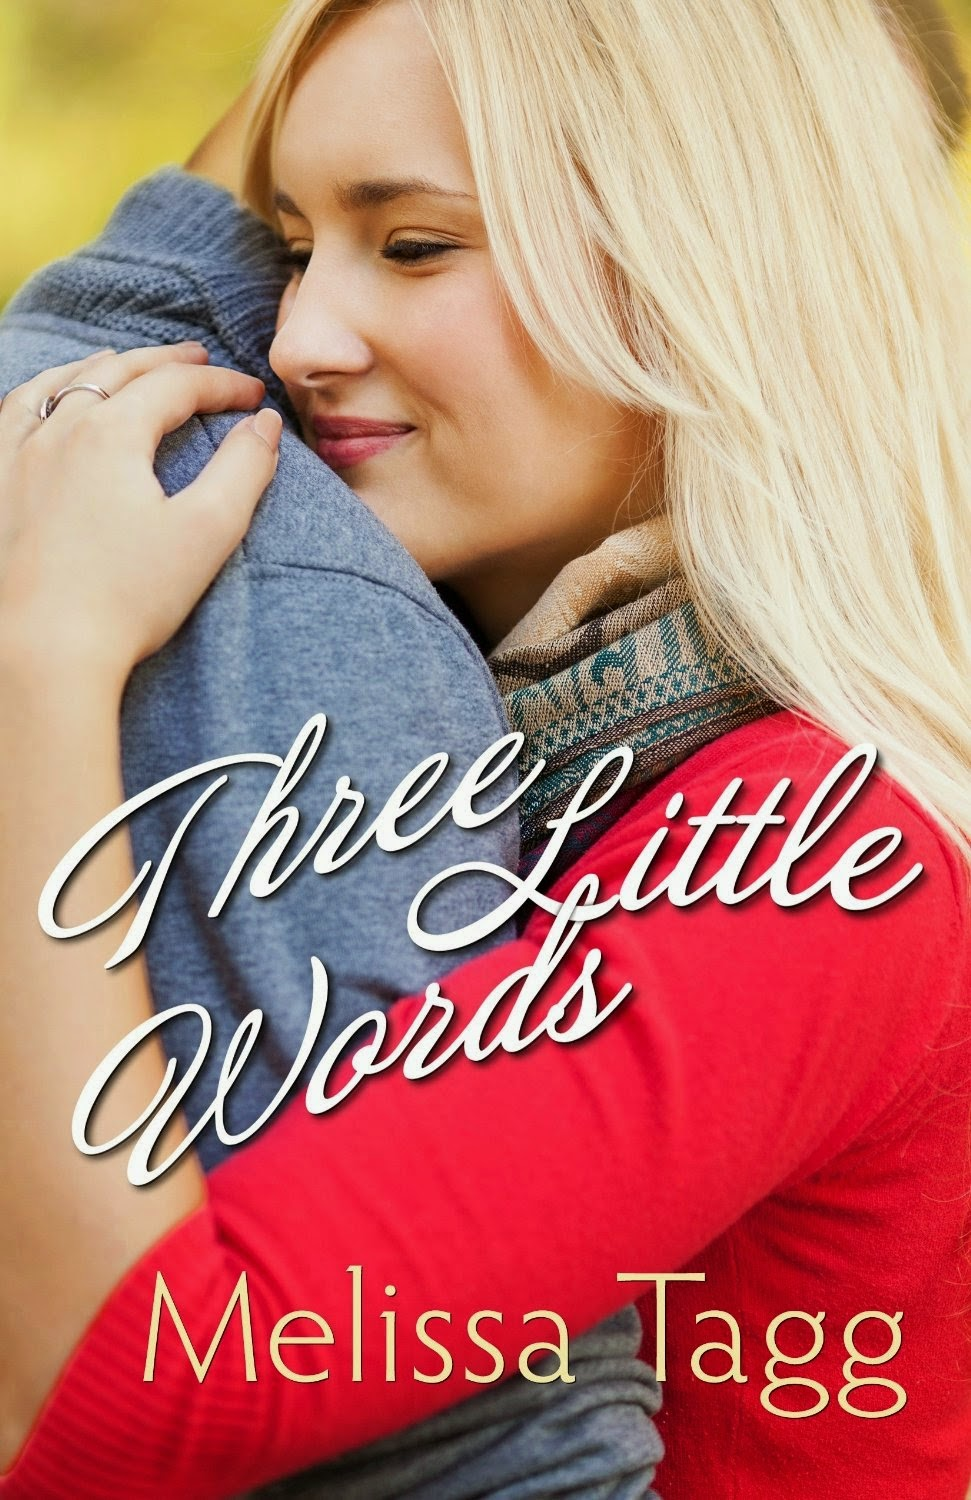 http://www.amazon.com/Three-Little-Words-Walker-Family-ebook/dp/B00U7SV5O0/ref=sr_1_2?ie=UTF8&qid=1429912504&sr=8-2&keywords=three+little+words